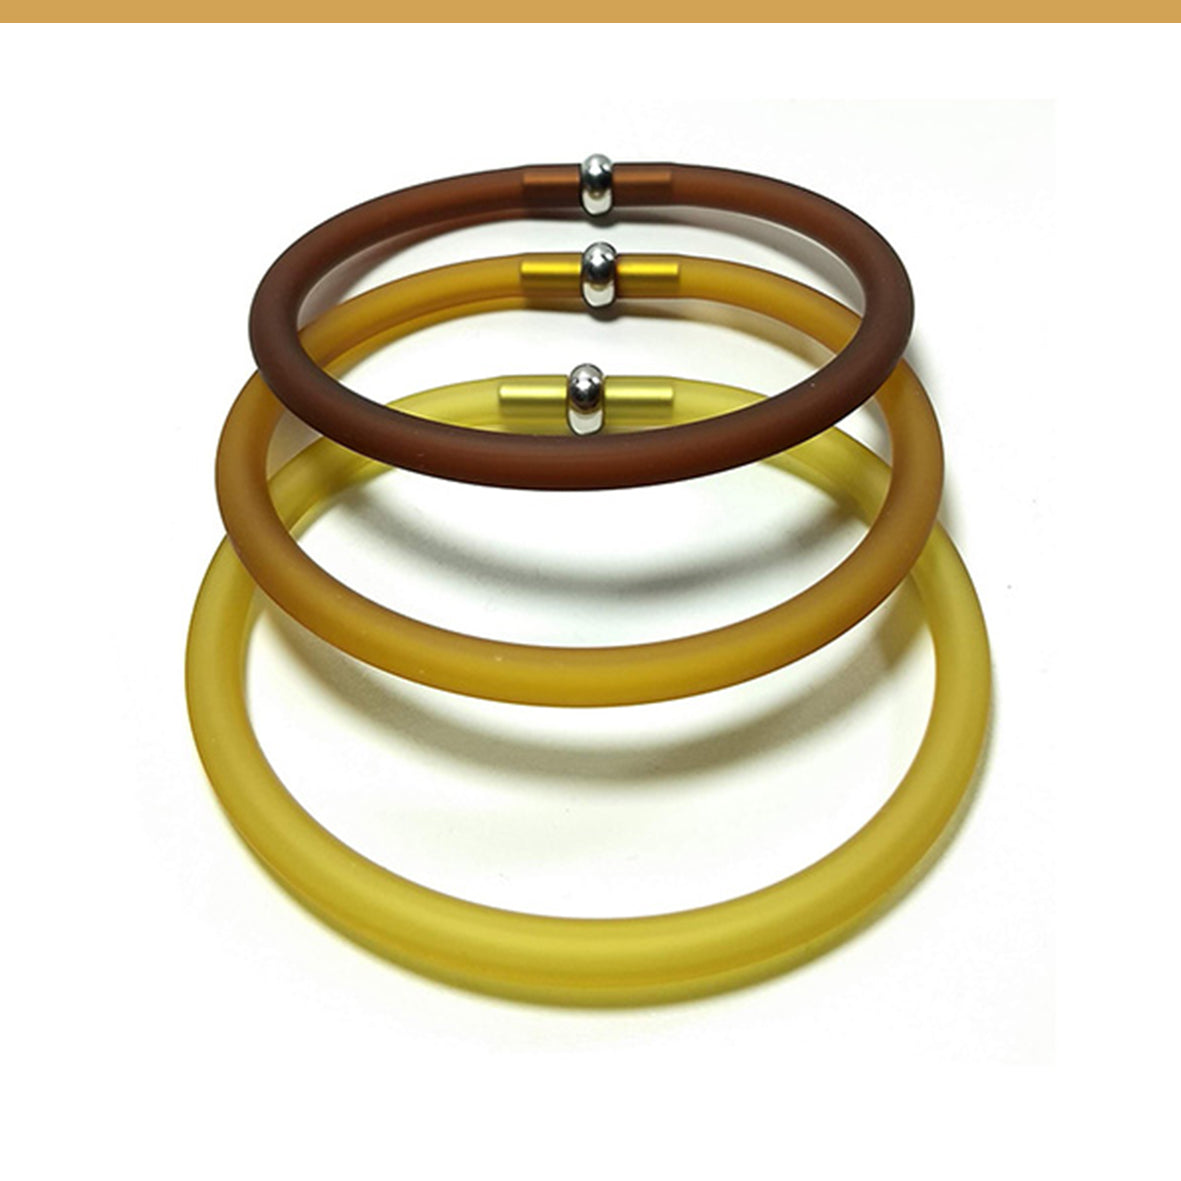 Safari Trio set of 3 rubber bracelets in 9 colors